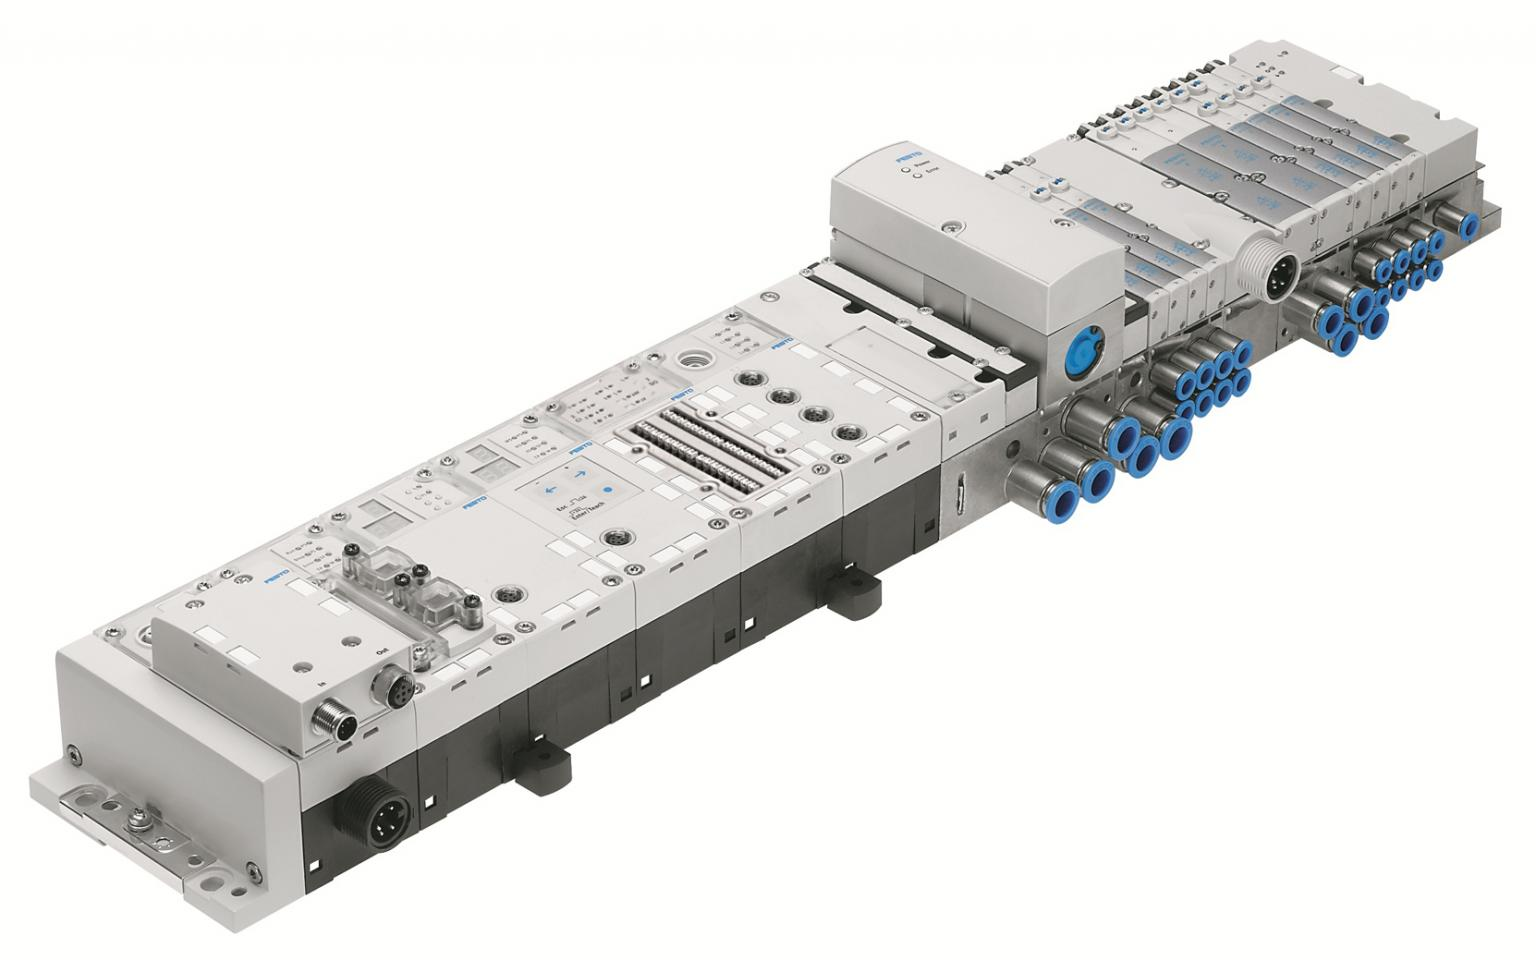 The multi-featured Counter Module adds flexible counting capability to Festo's CPX systems